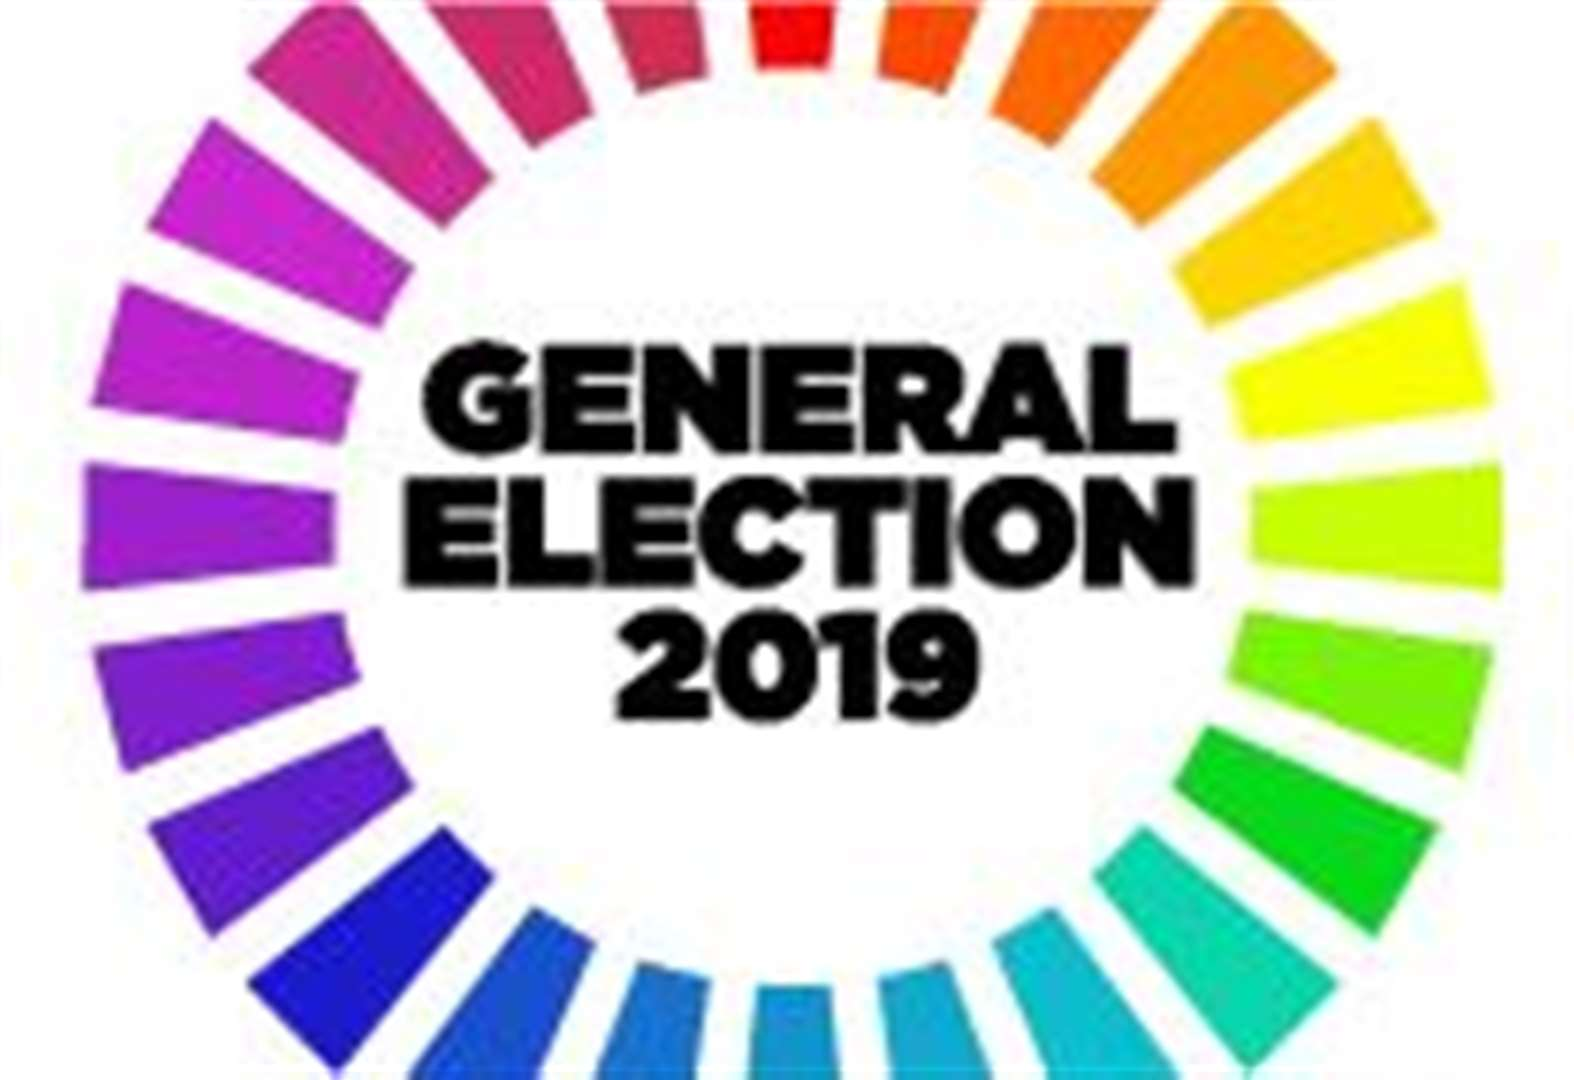 General Election 2019: Sleaford and North Hykeham candidates' profiles